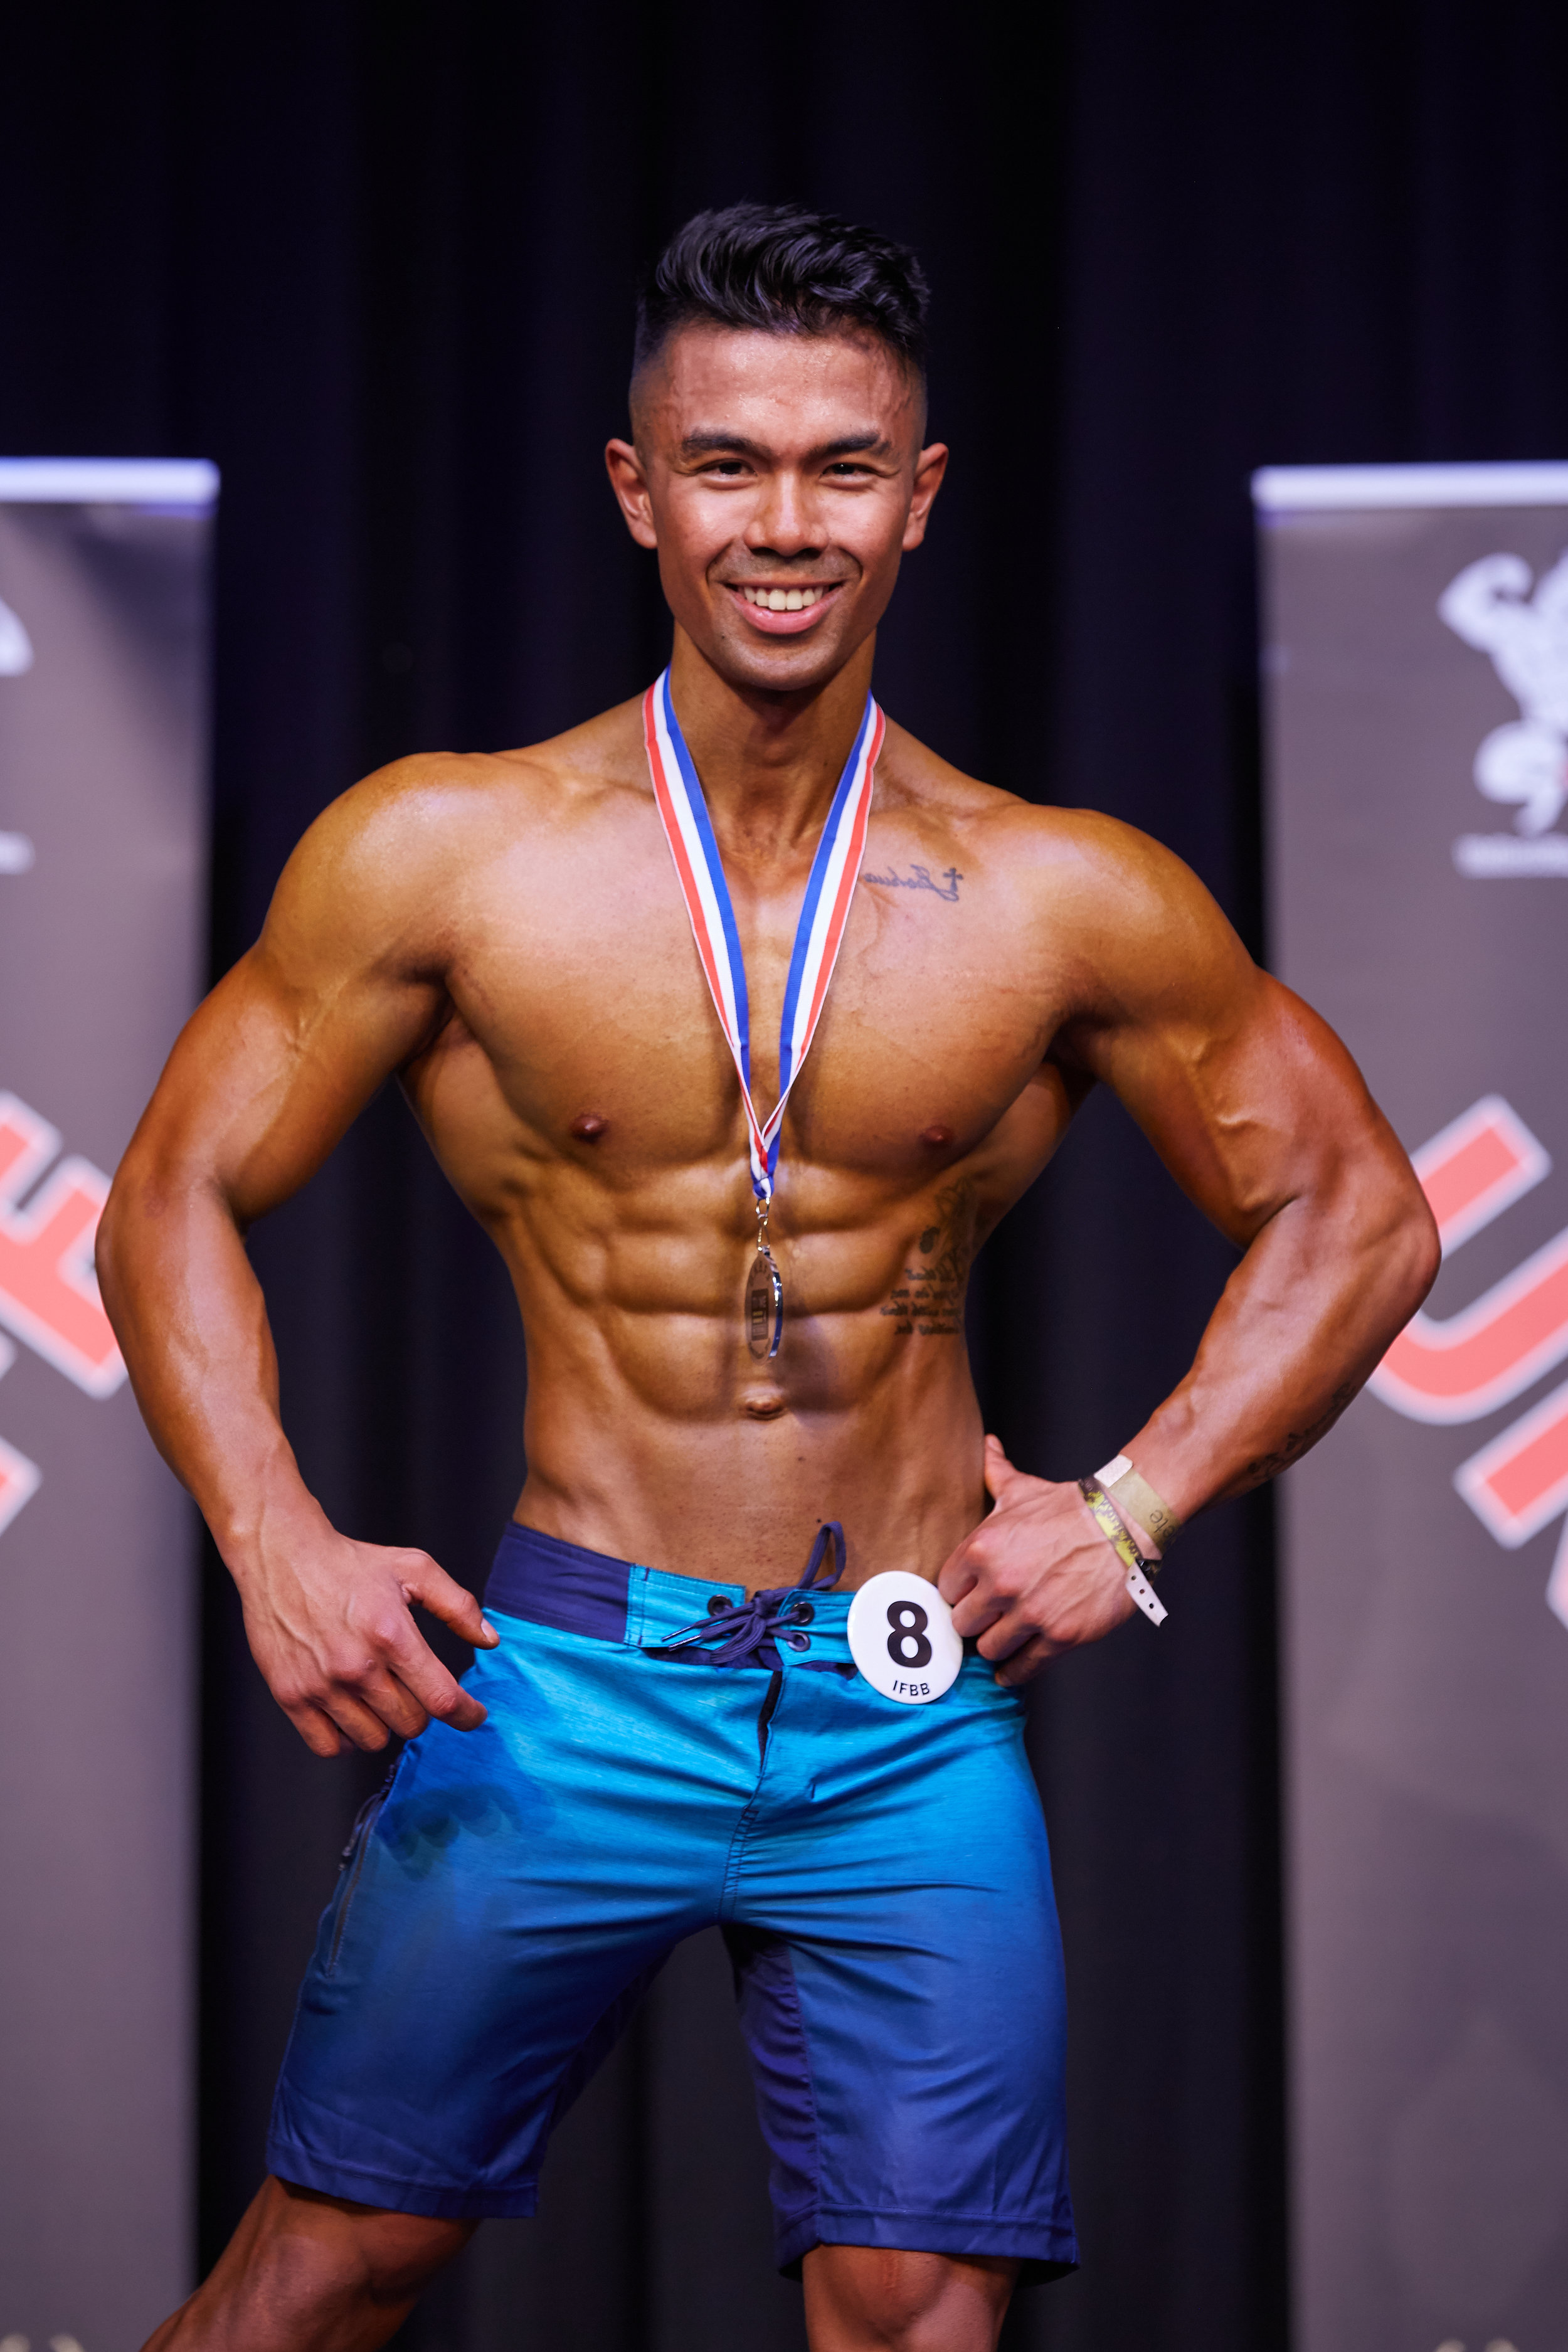 Justin Makil won the juniors and his height class in men's physique.